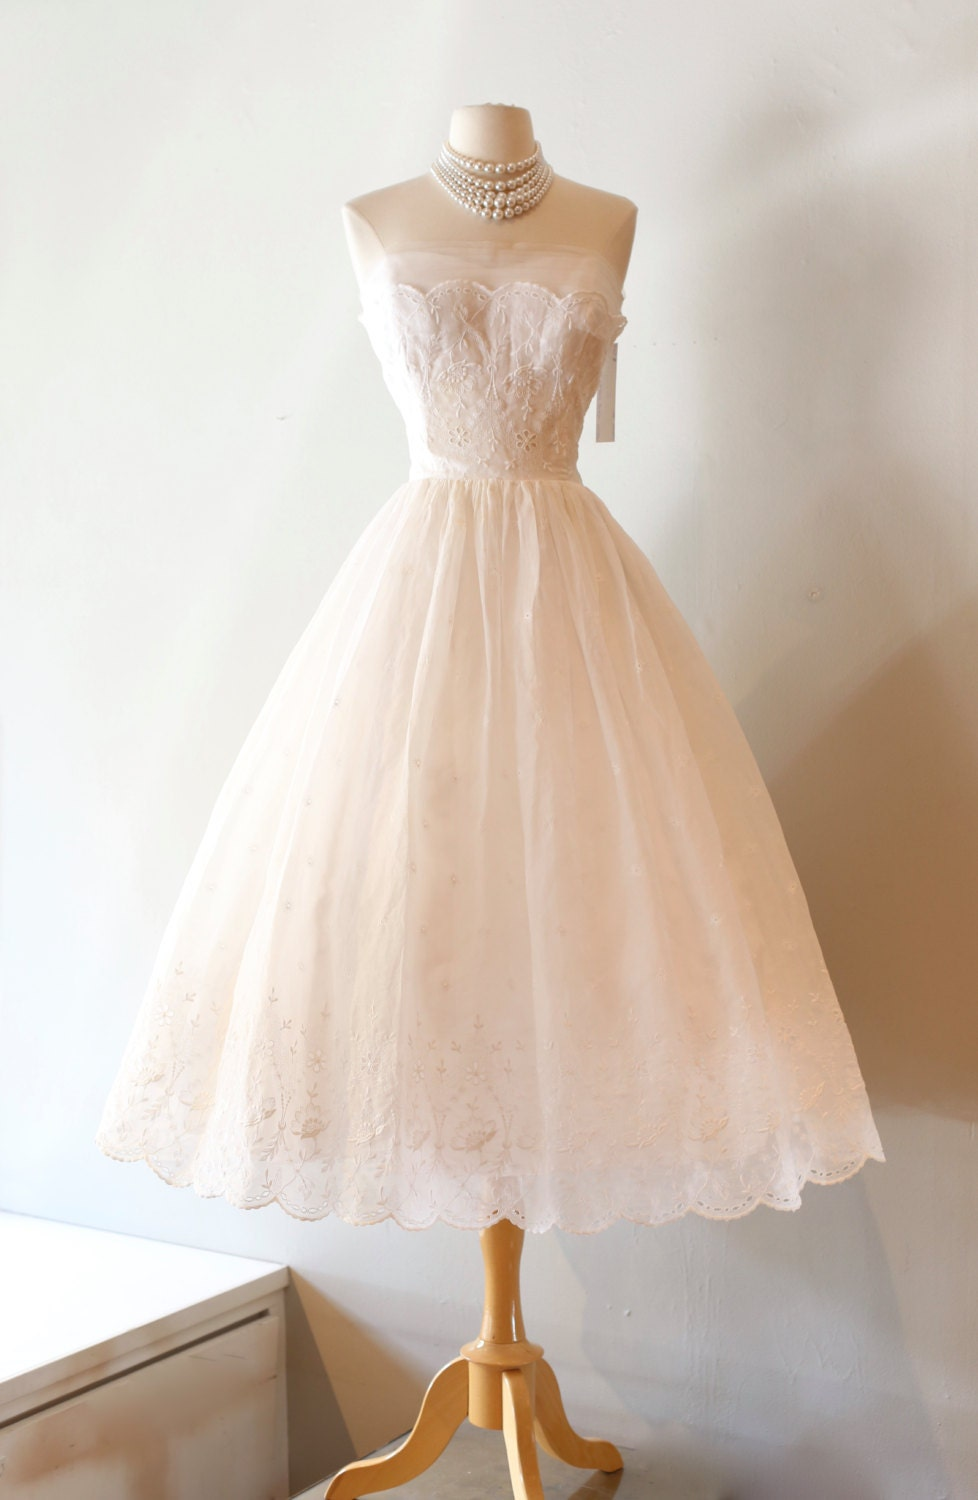 Vintage wedding dresses and gowns dallas vintage shop for Vintage wedding dresses dallas